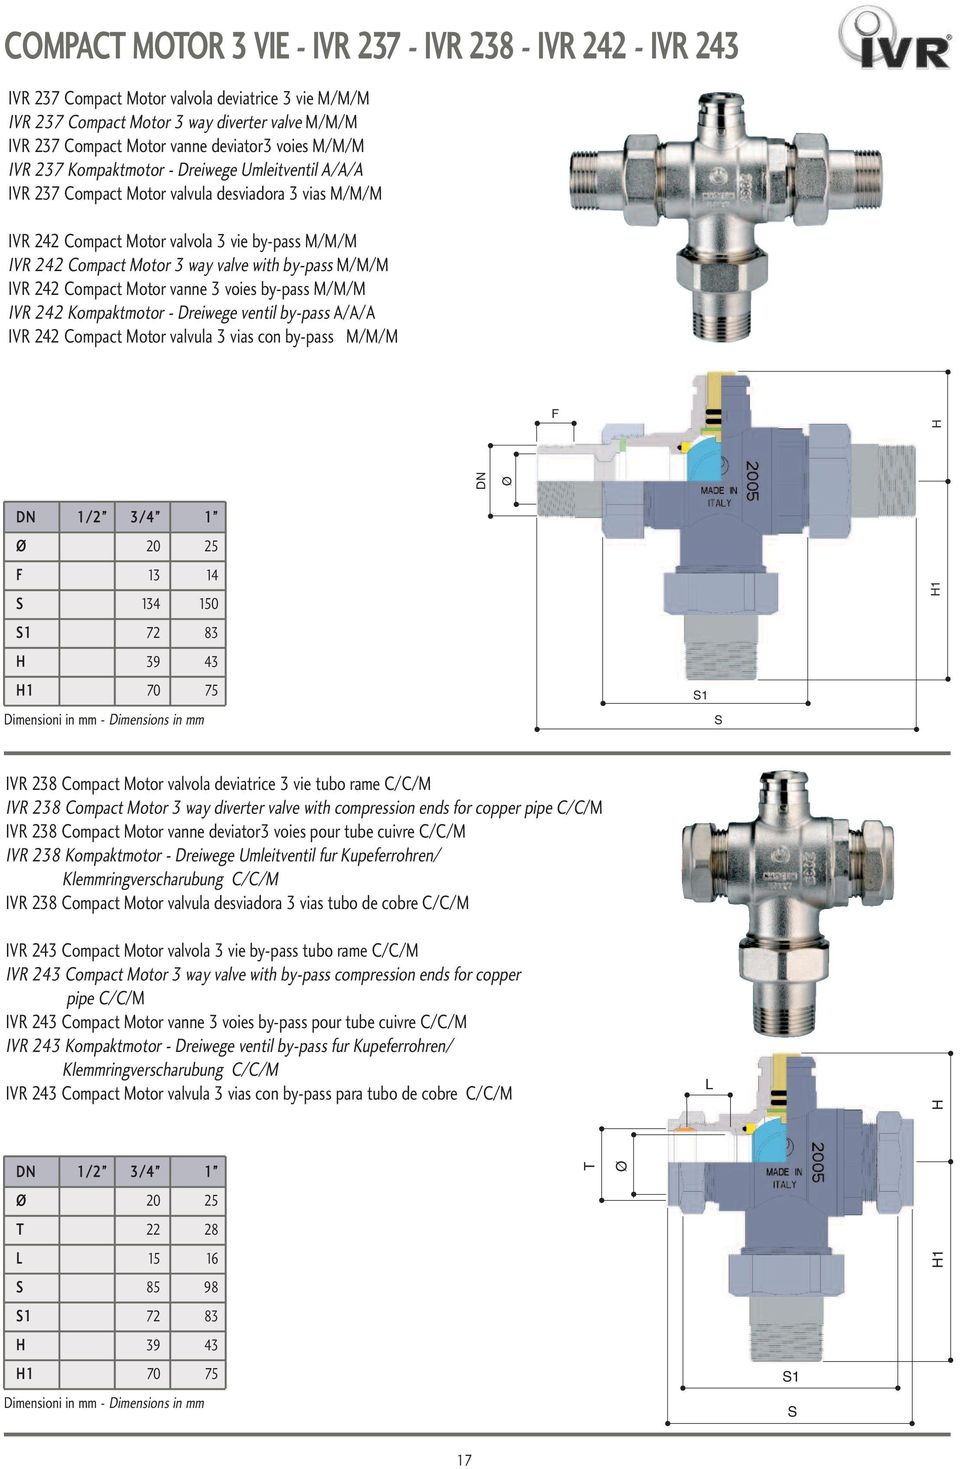 valve with by-pass M/M/M IVR 242 Compact Motor vanne 3 voies by-pass M/M/M IVR 242 Kompaktmotor - Dreiwege ventil by-pass A/A/A IVR 242 Compact Motor valvula 3 vias con by-pass M/M/M F DN Ø H DN 1/2